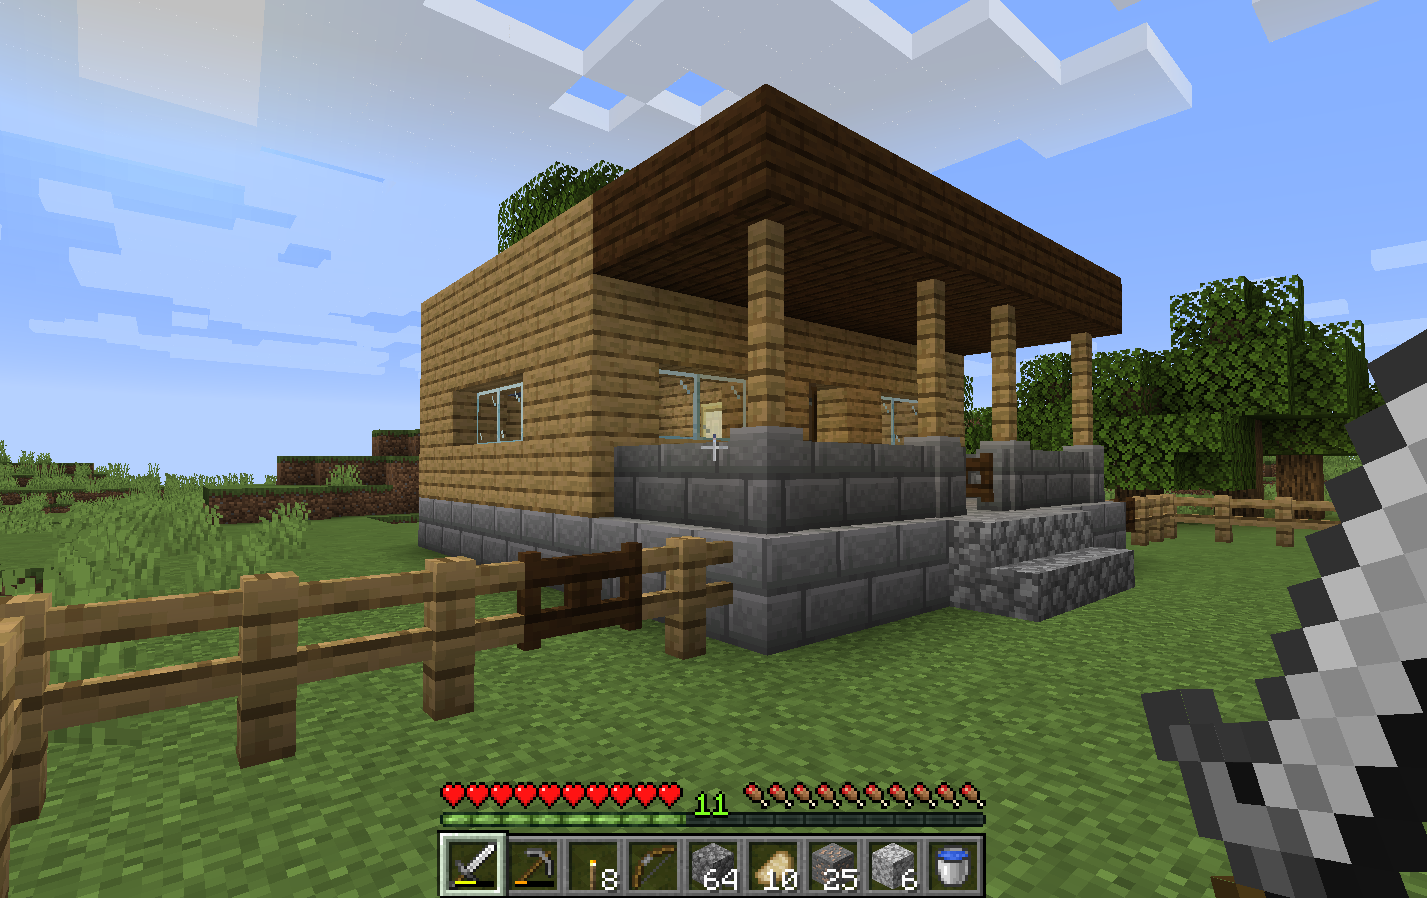 A view of a house made in minecraft with the regular textures